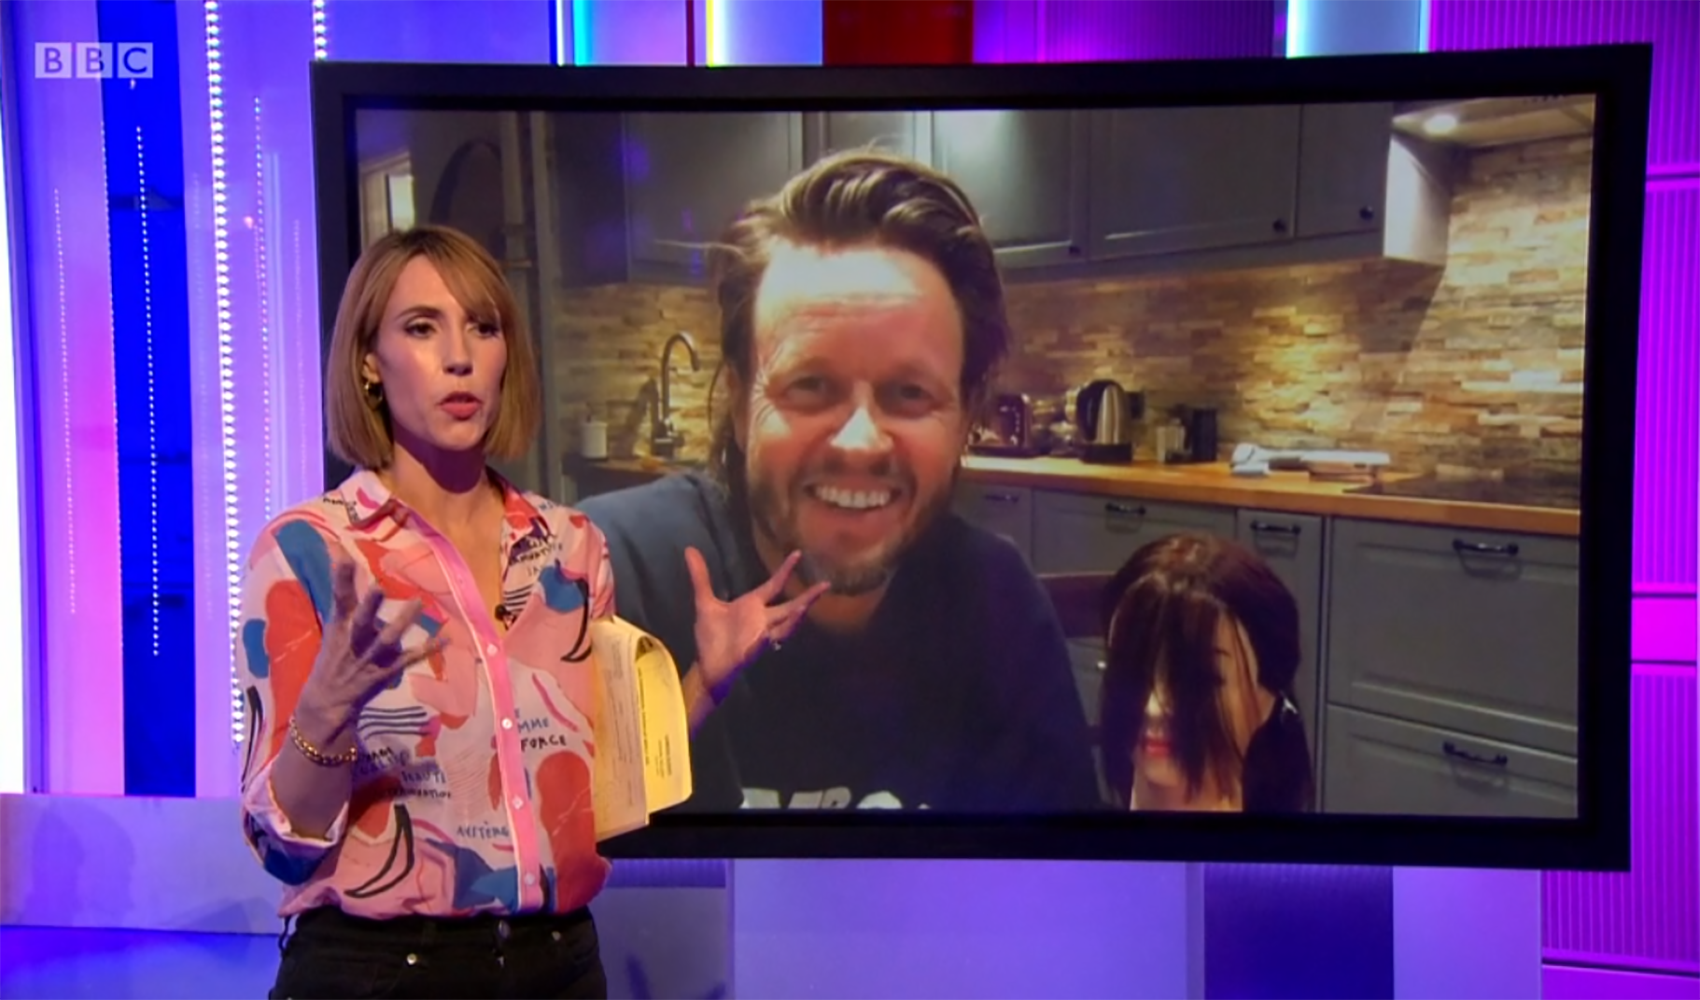 The One Show flooded with hundreds of complaints over hair advice amid lockdown